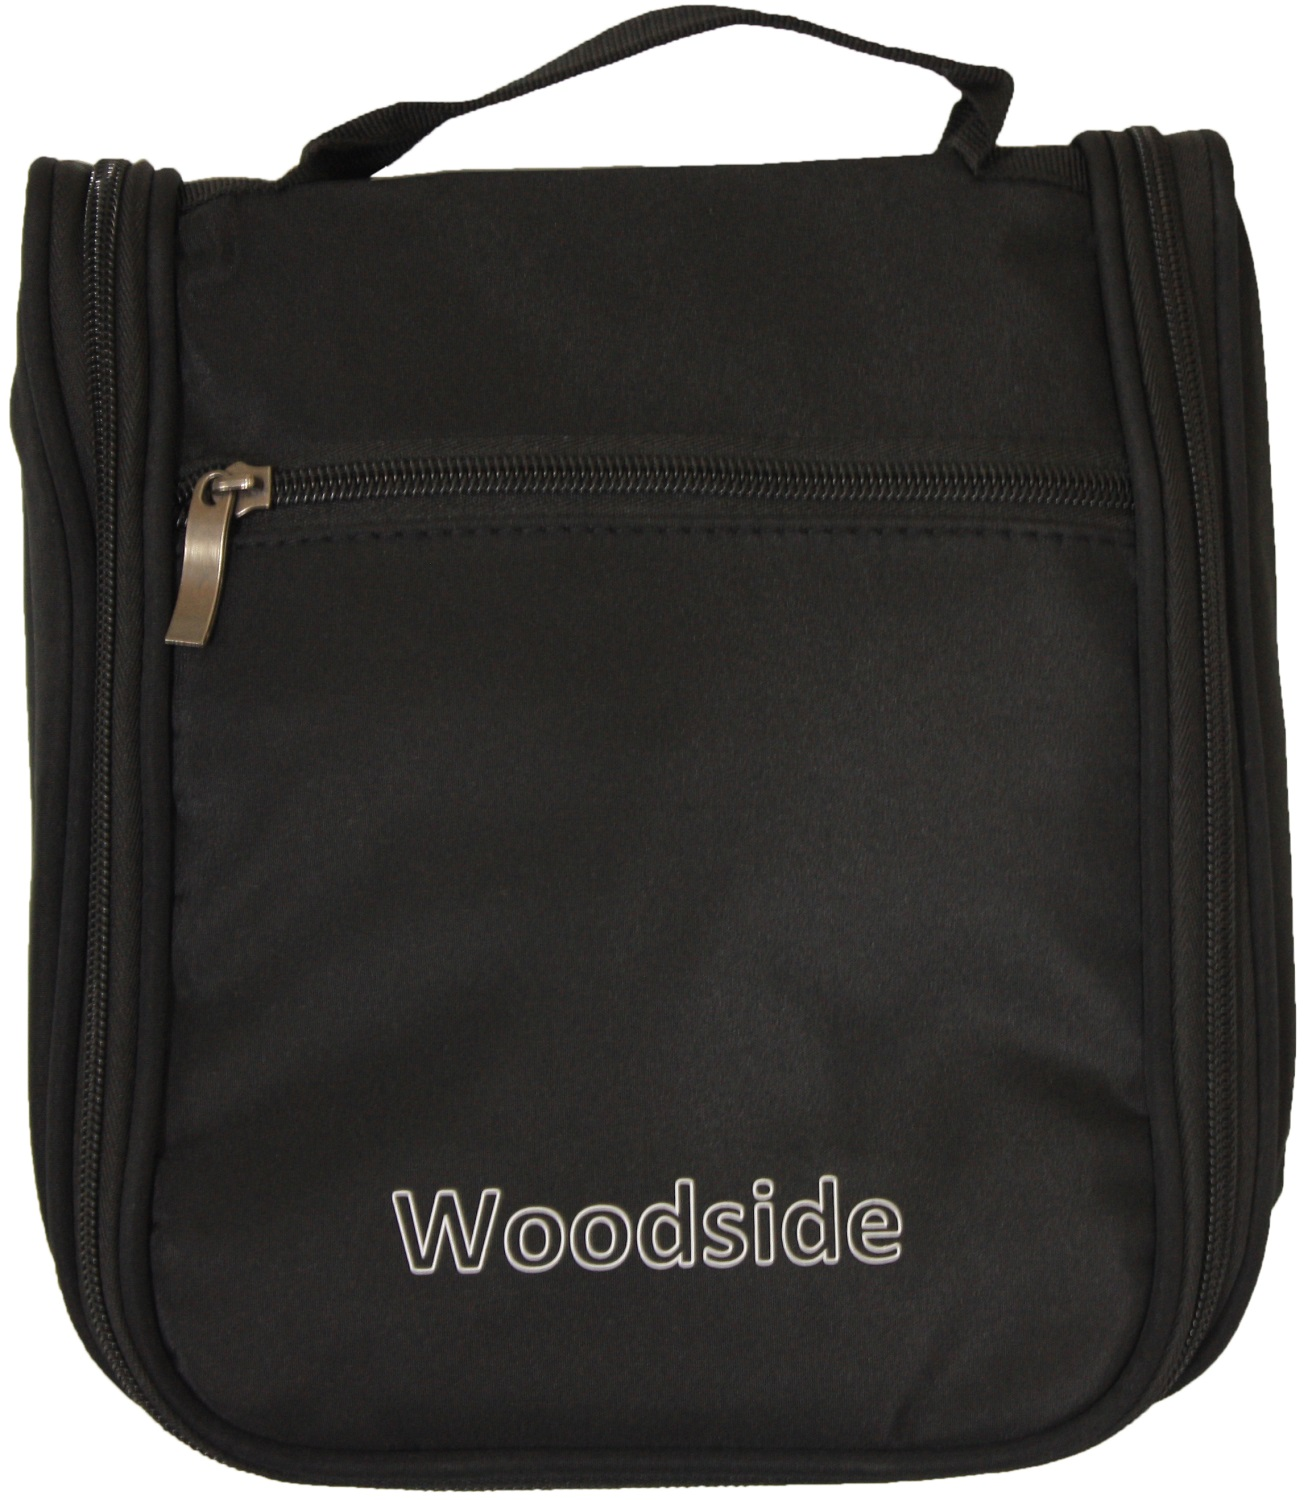 WOODSIDE-DELUXE-CAMPING-TRAVEL-WASHBAG-TOILETRIES-WASH-BAG-HANGING-NEW